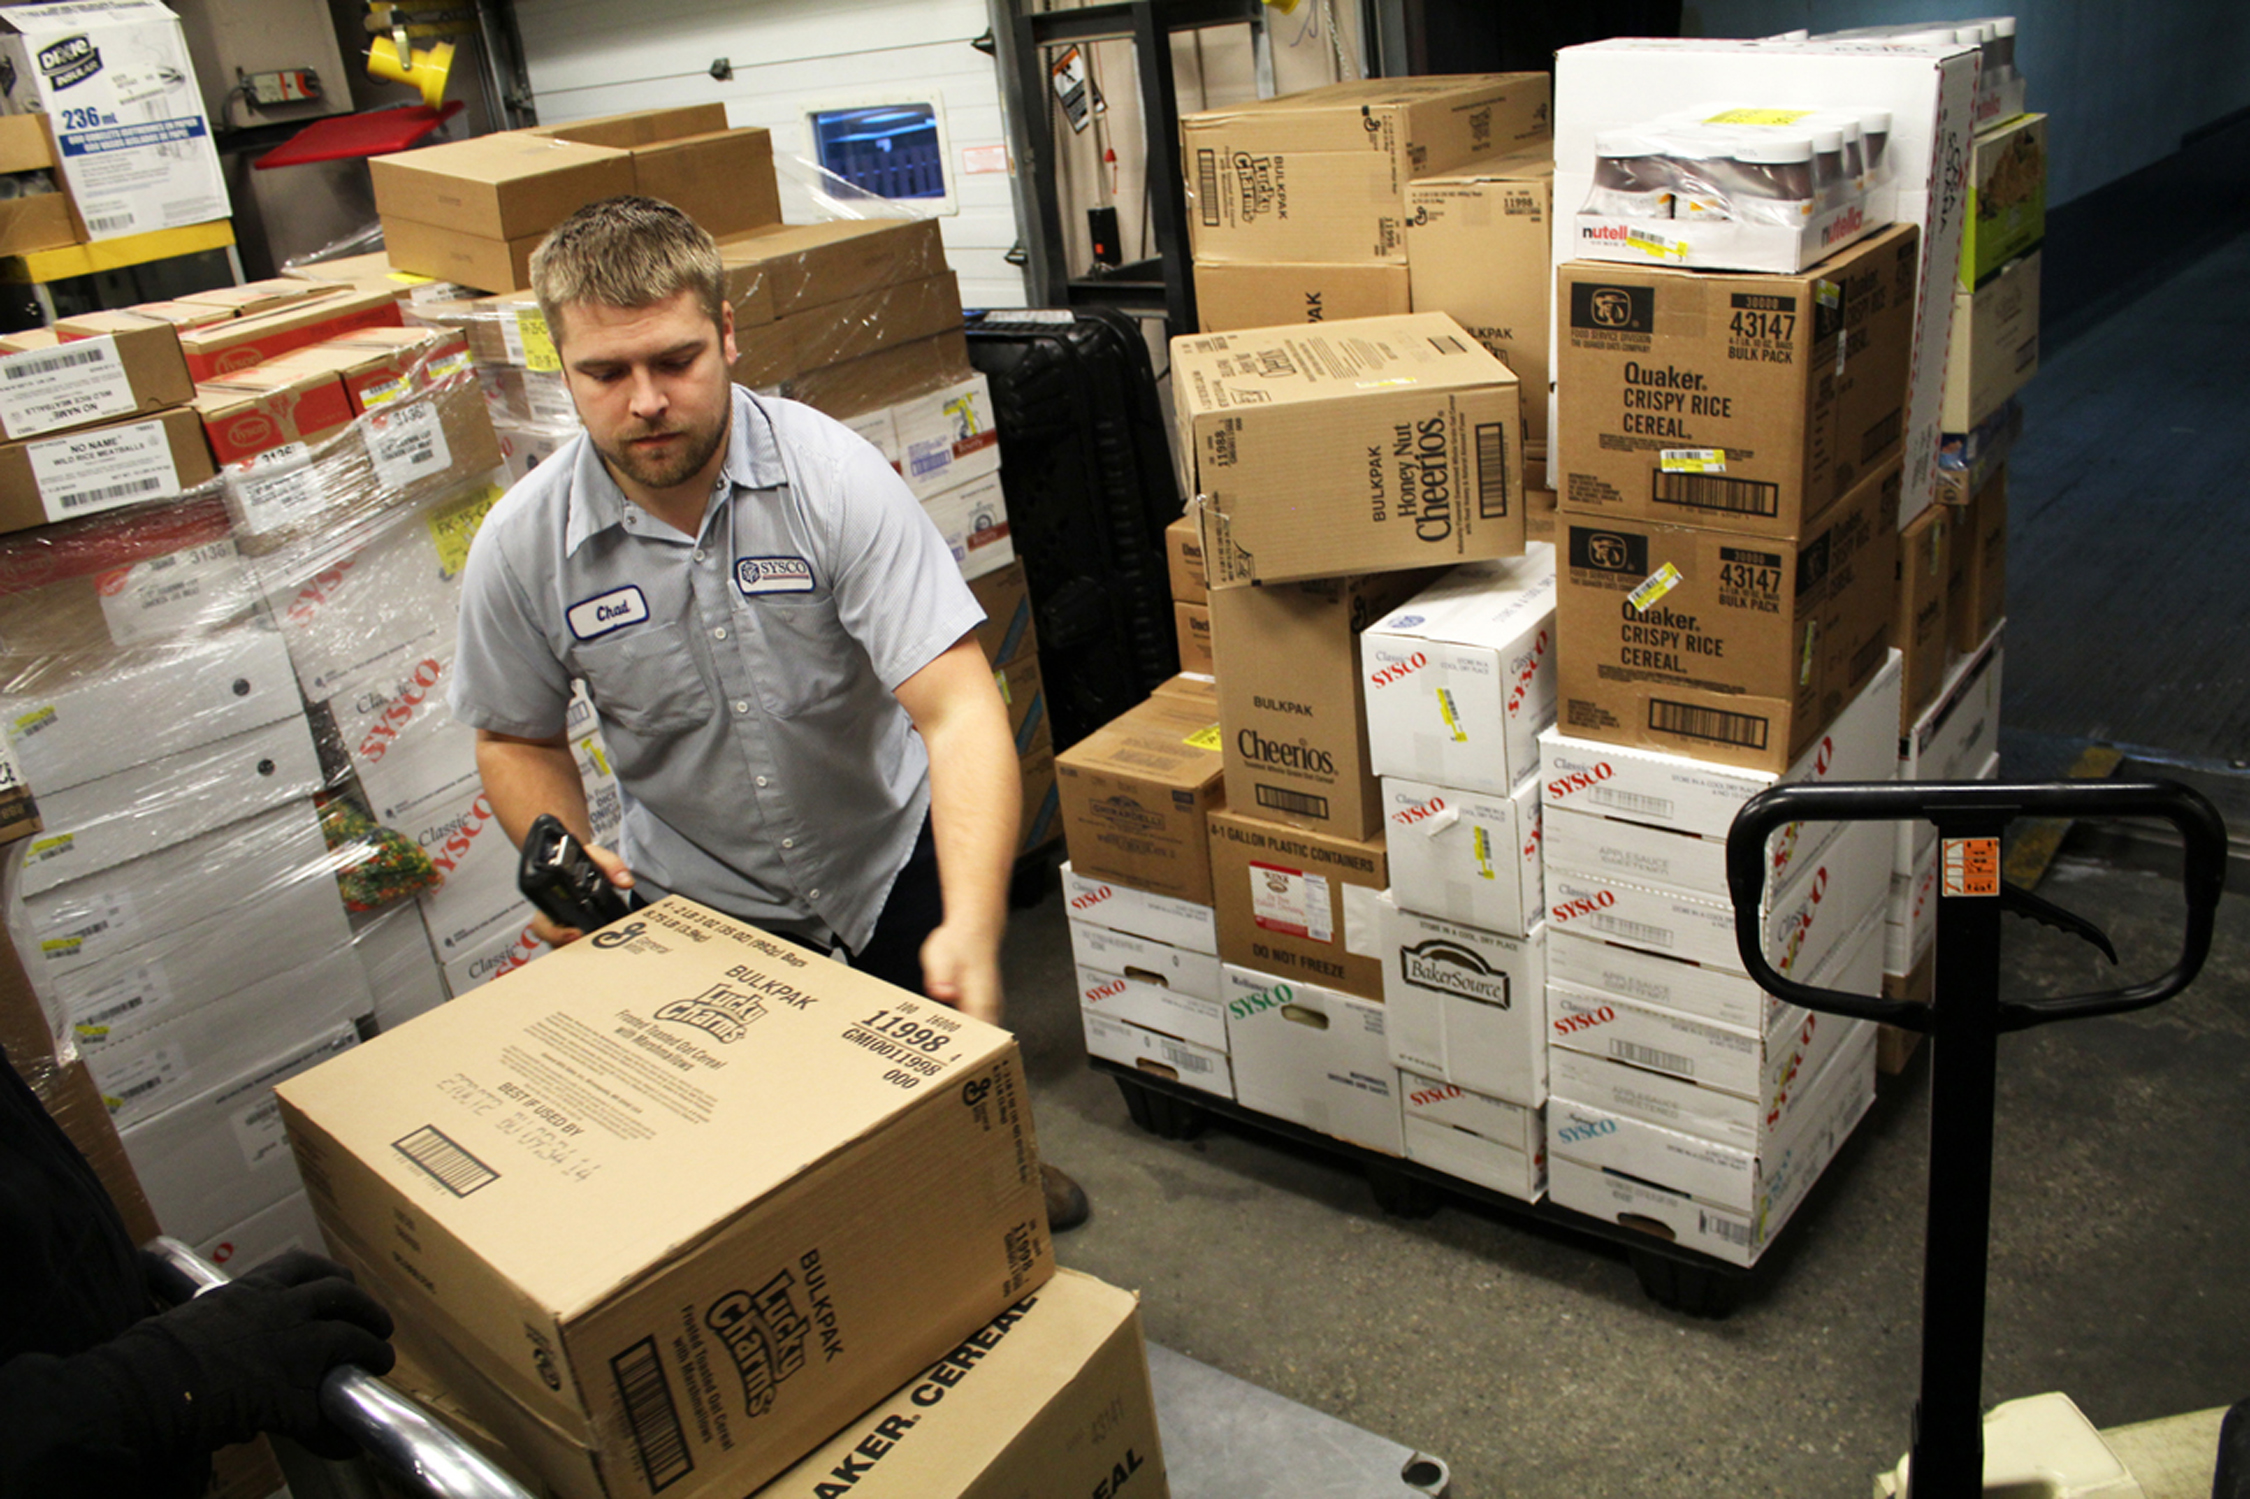 Photo by Brandon King. Chad Ouellette unloads food from Sysco. Dining Services signed on with Sysco as a new distributor August 1st.